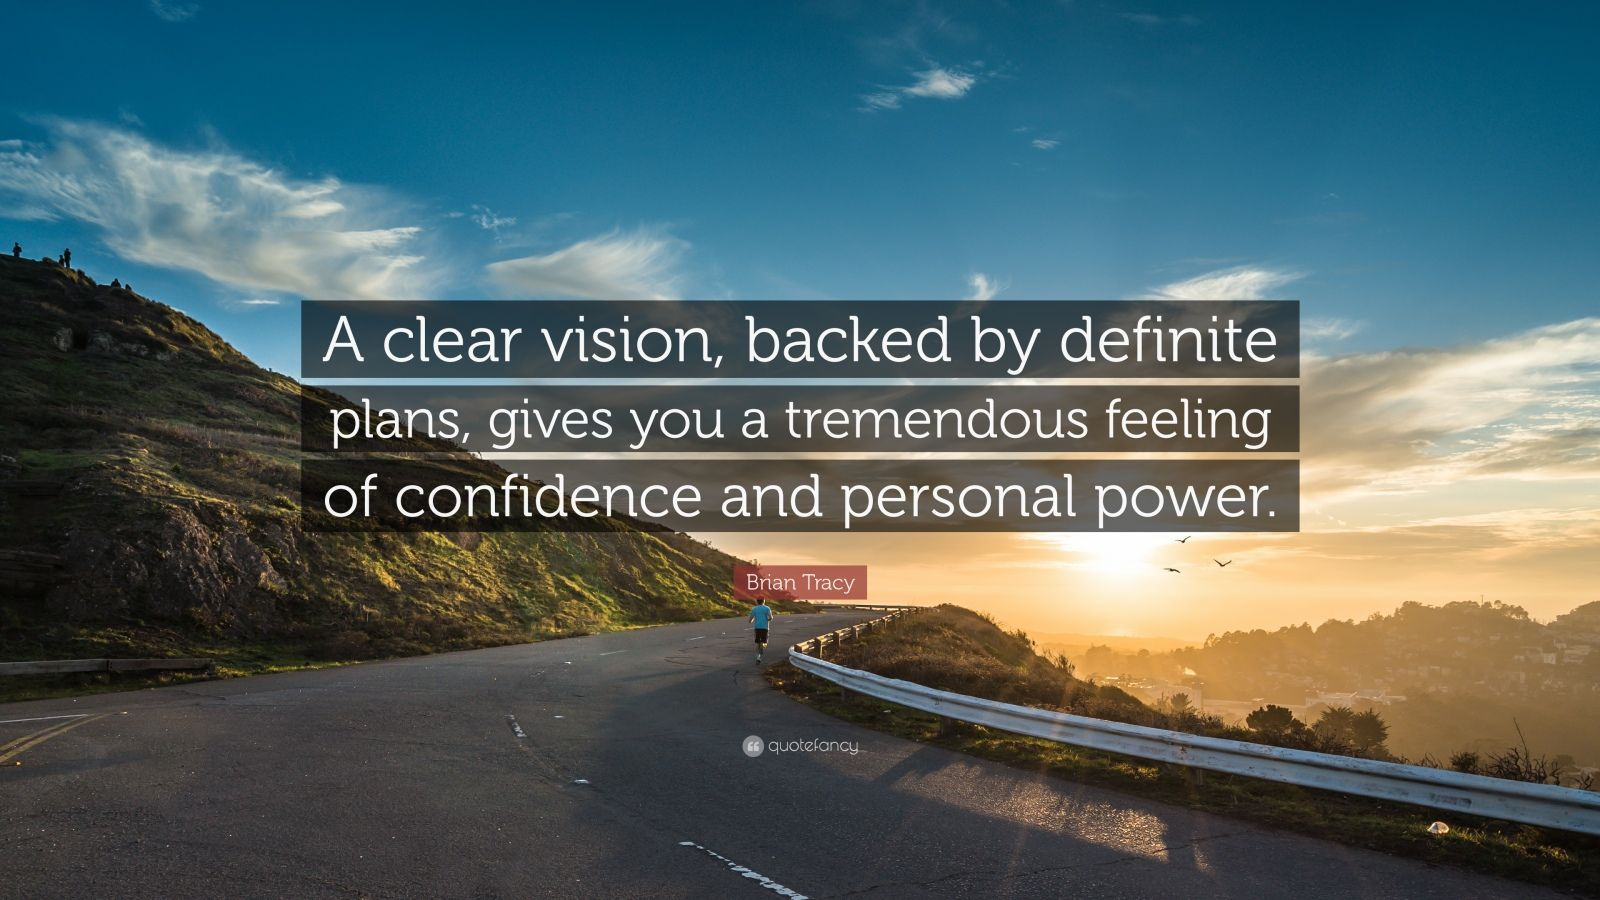 brian tracy quotes quotefancy brian tracy quote a clear vision backed by definite plans gives you